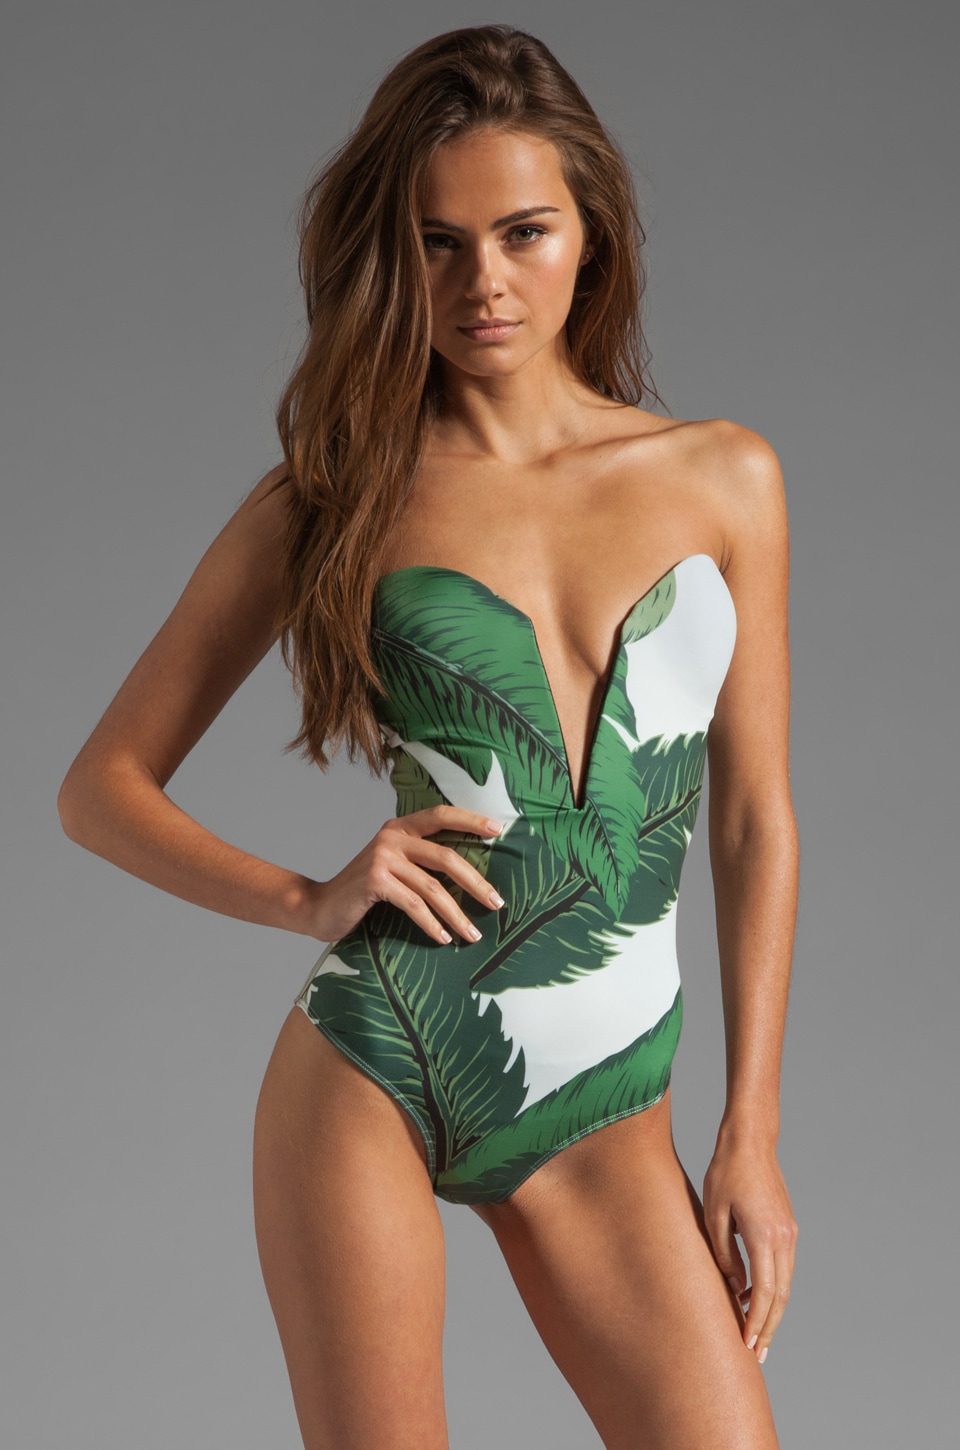 BEACH RIOT // STONE_COLD_FOX Gally Cook One Piece in Palm Print